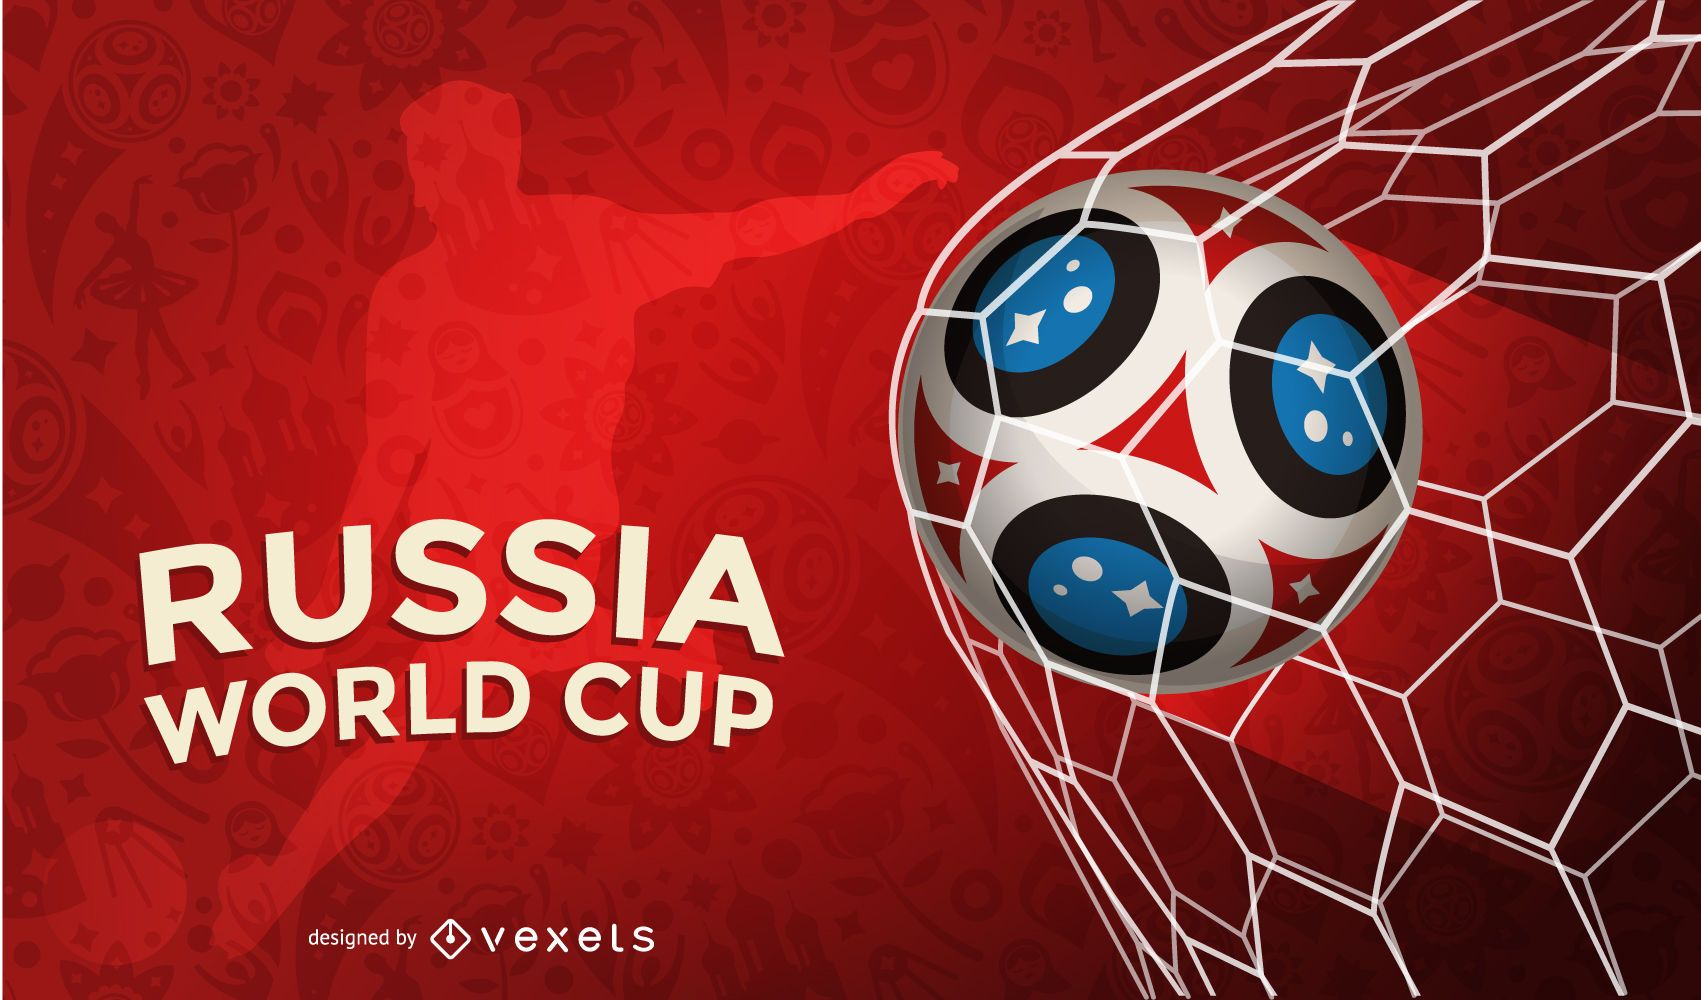 Russia world cup goal background